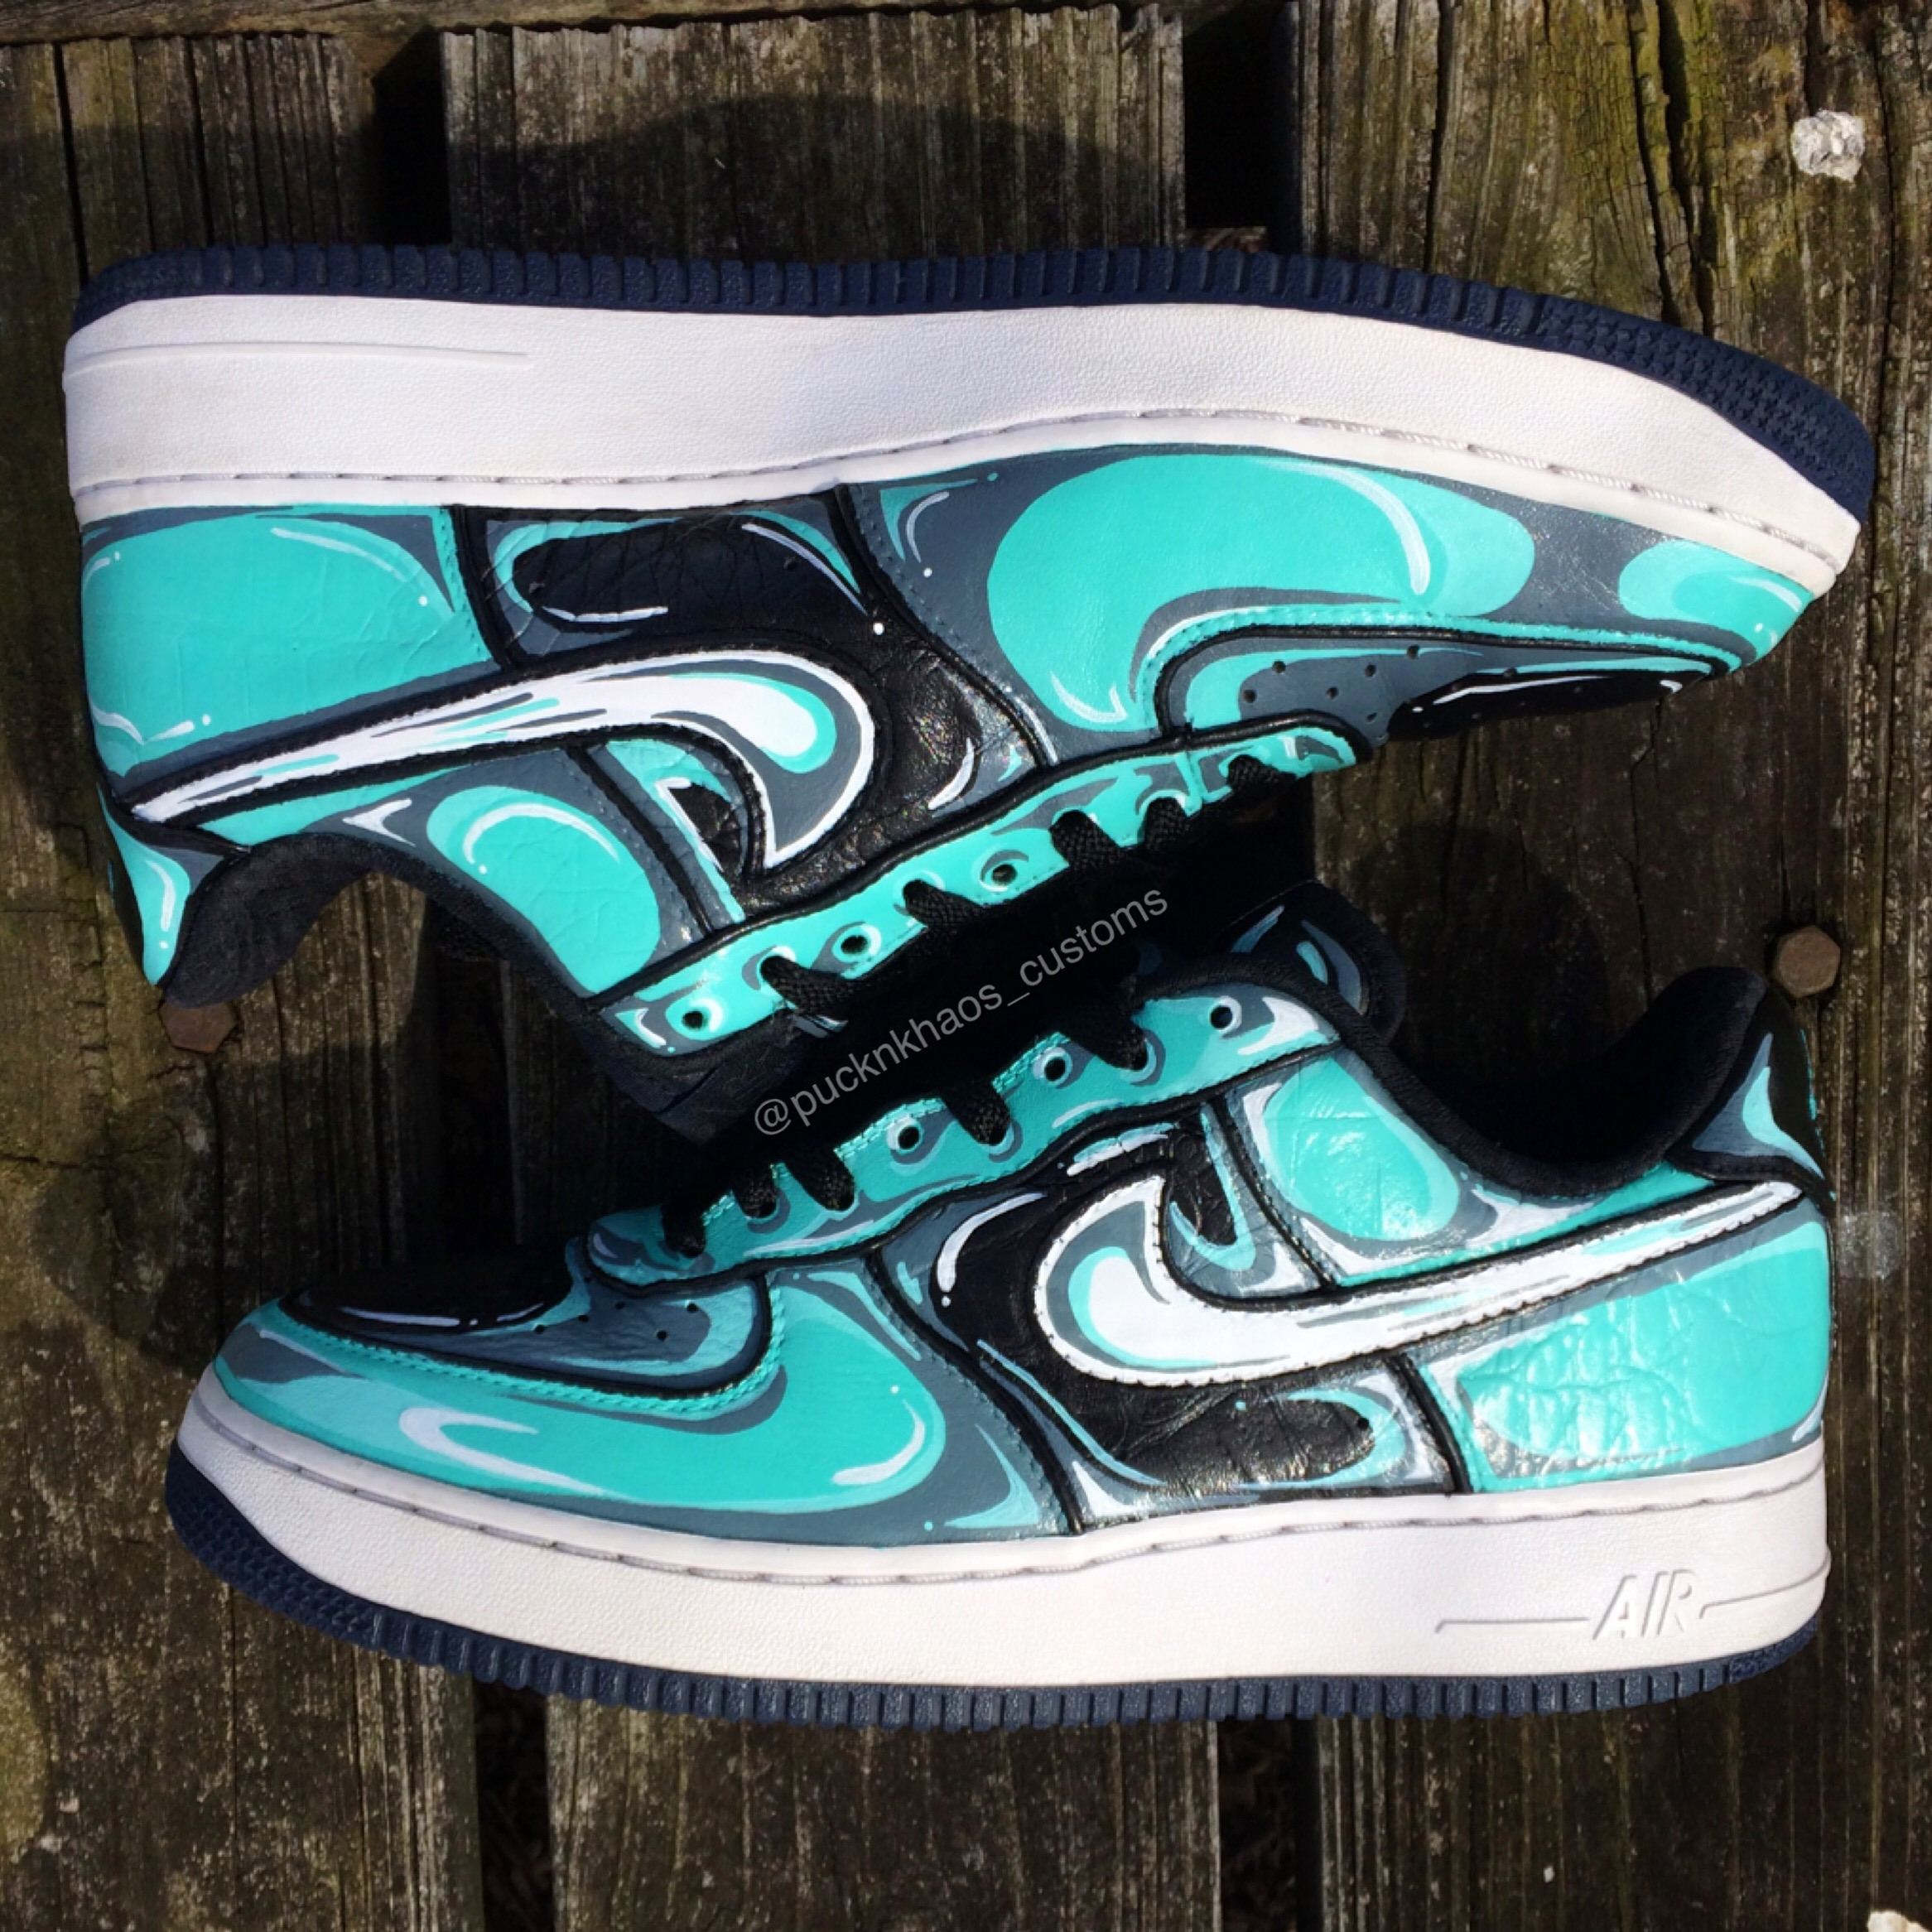 aqua nike sneaker customs aerial view puckn khaos.JPG